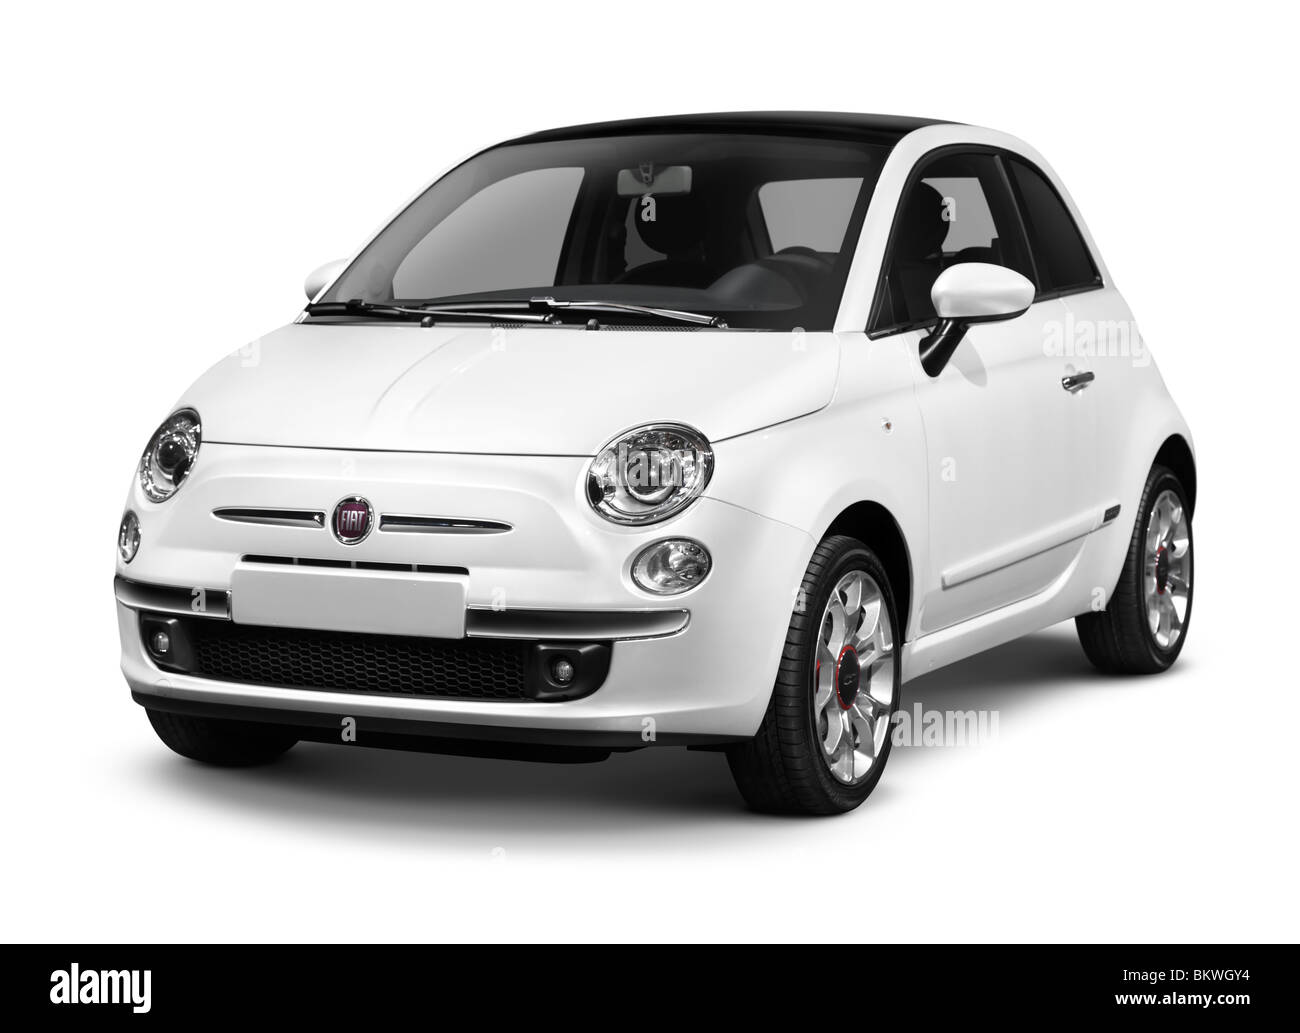 2010 Fiat Nuova 500 small city car isolated on white background with  clipping path - Stock